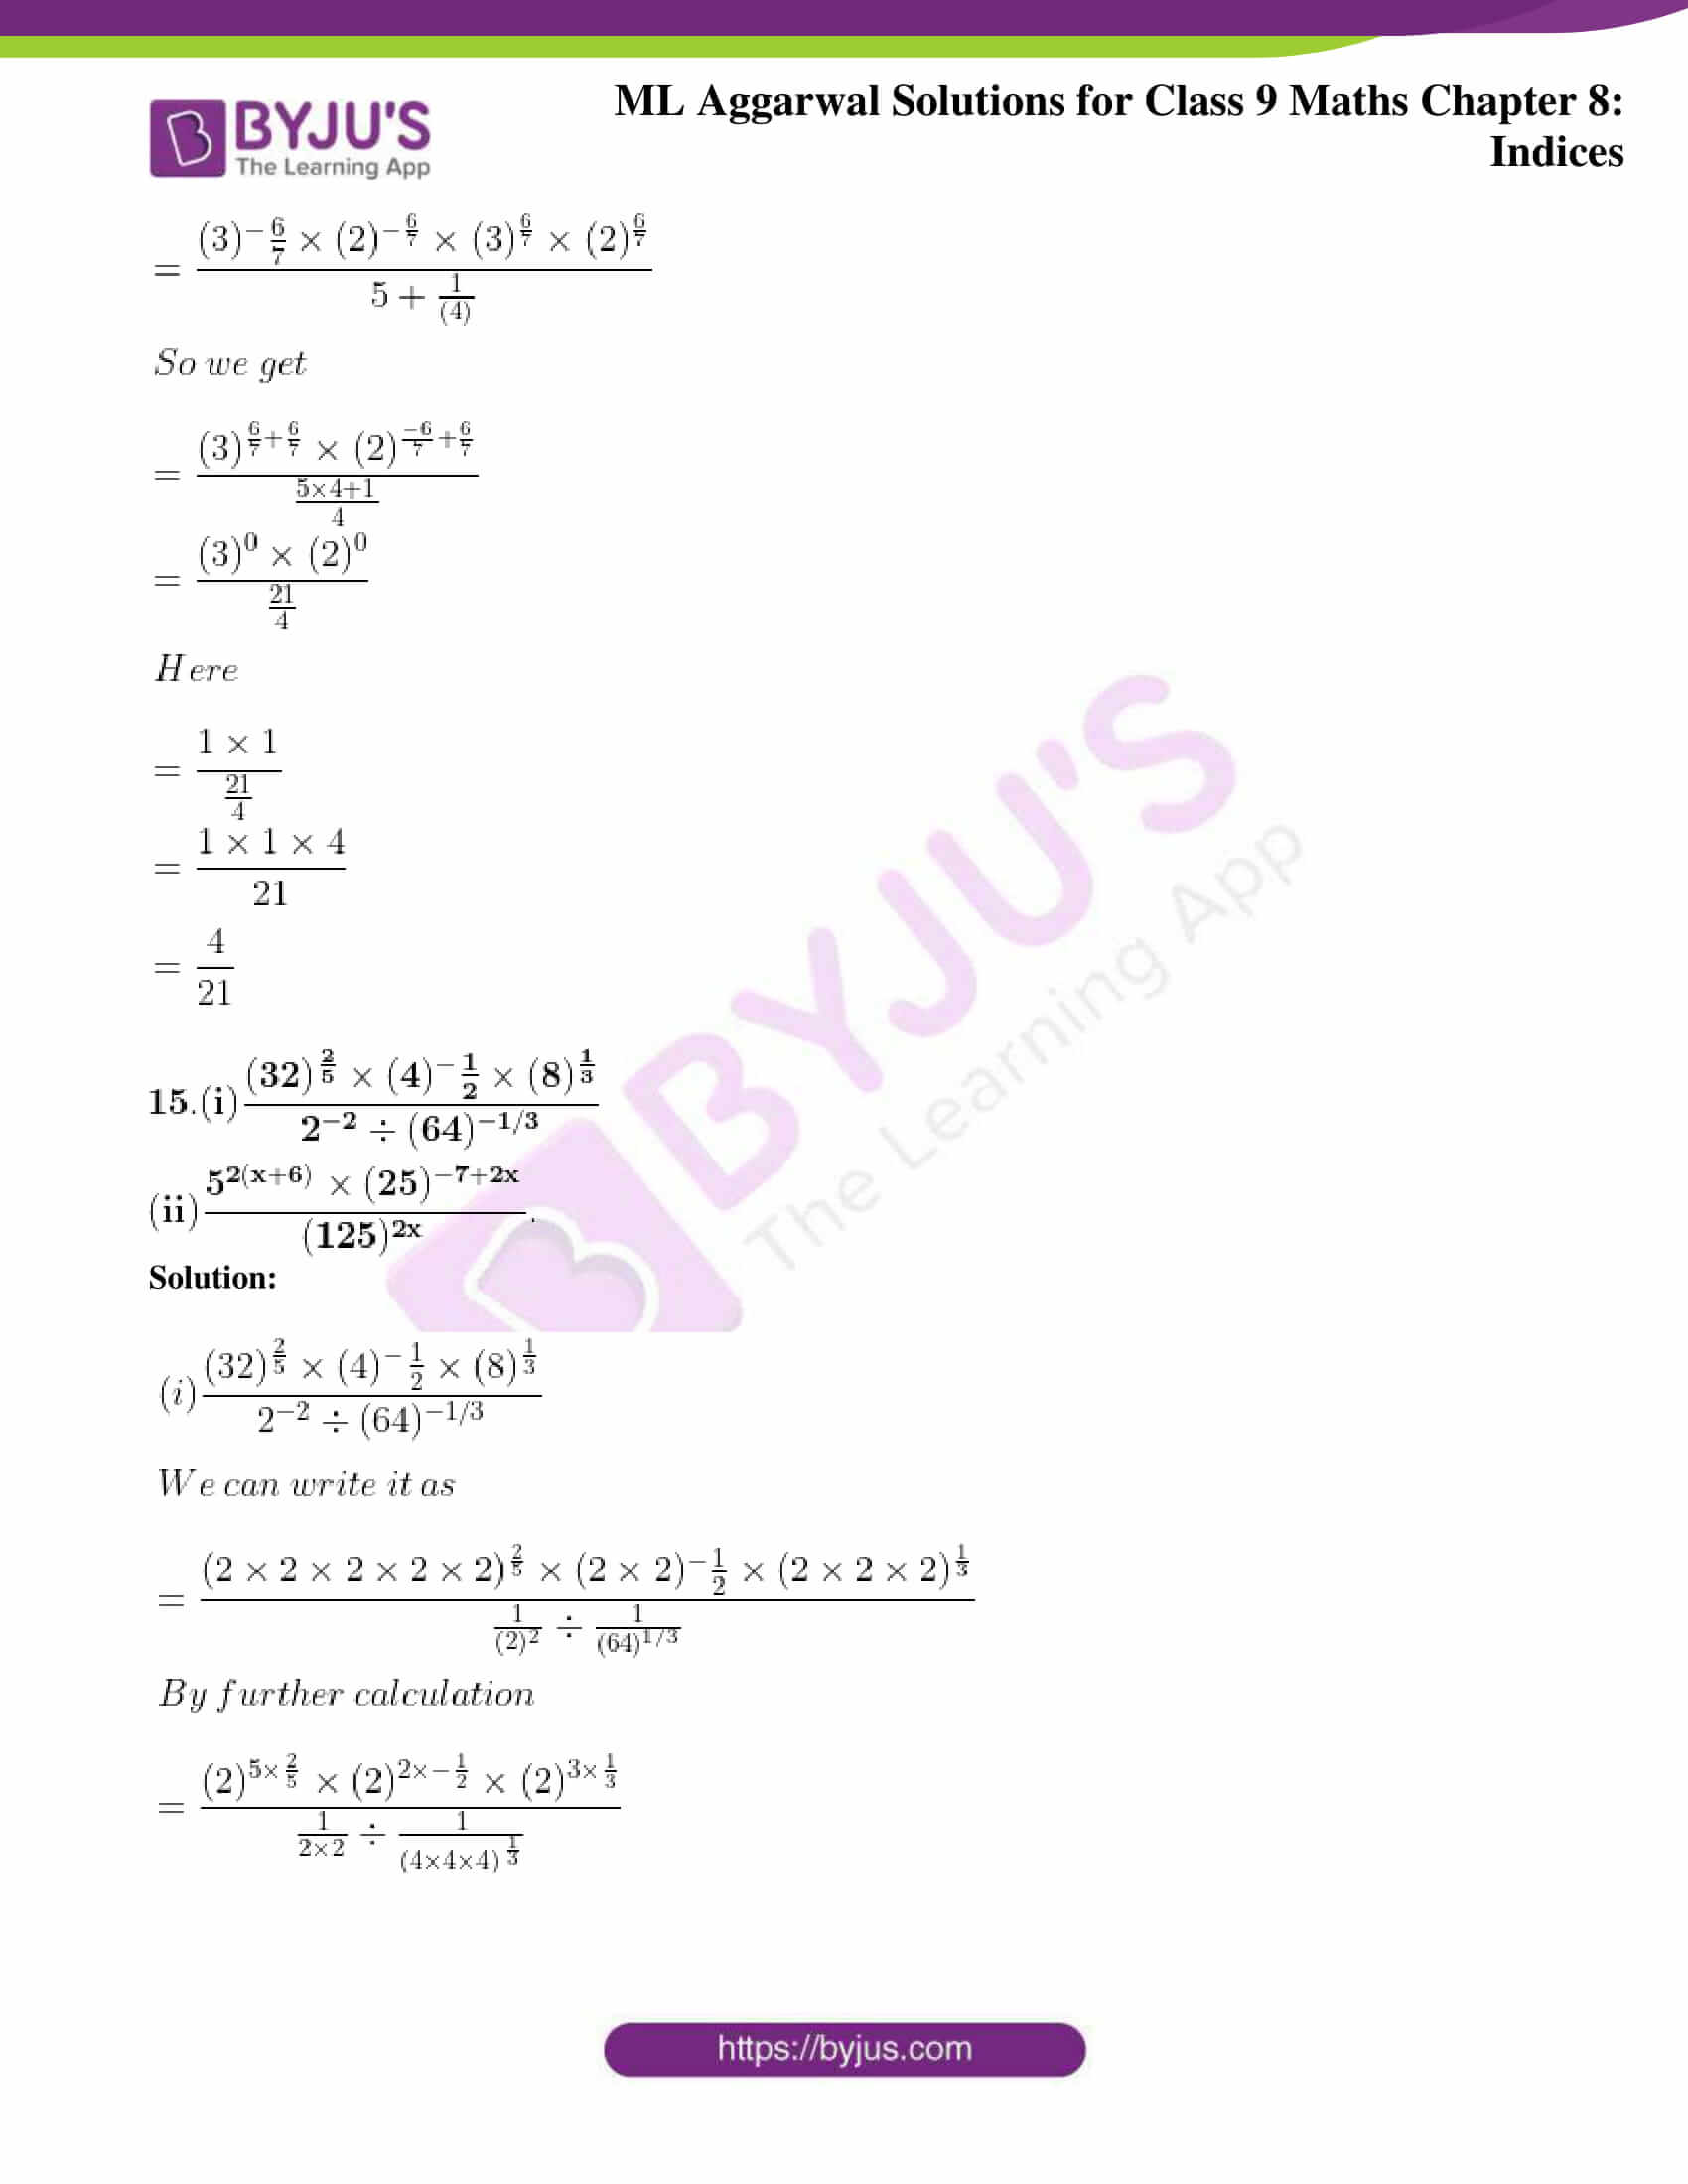 ml aggarwal solutions for class 9 maths chapter 8 15